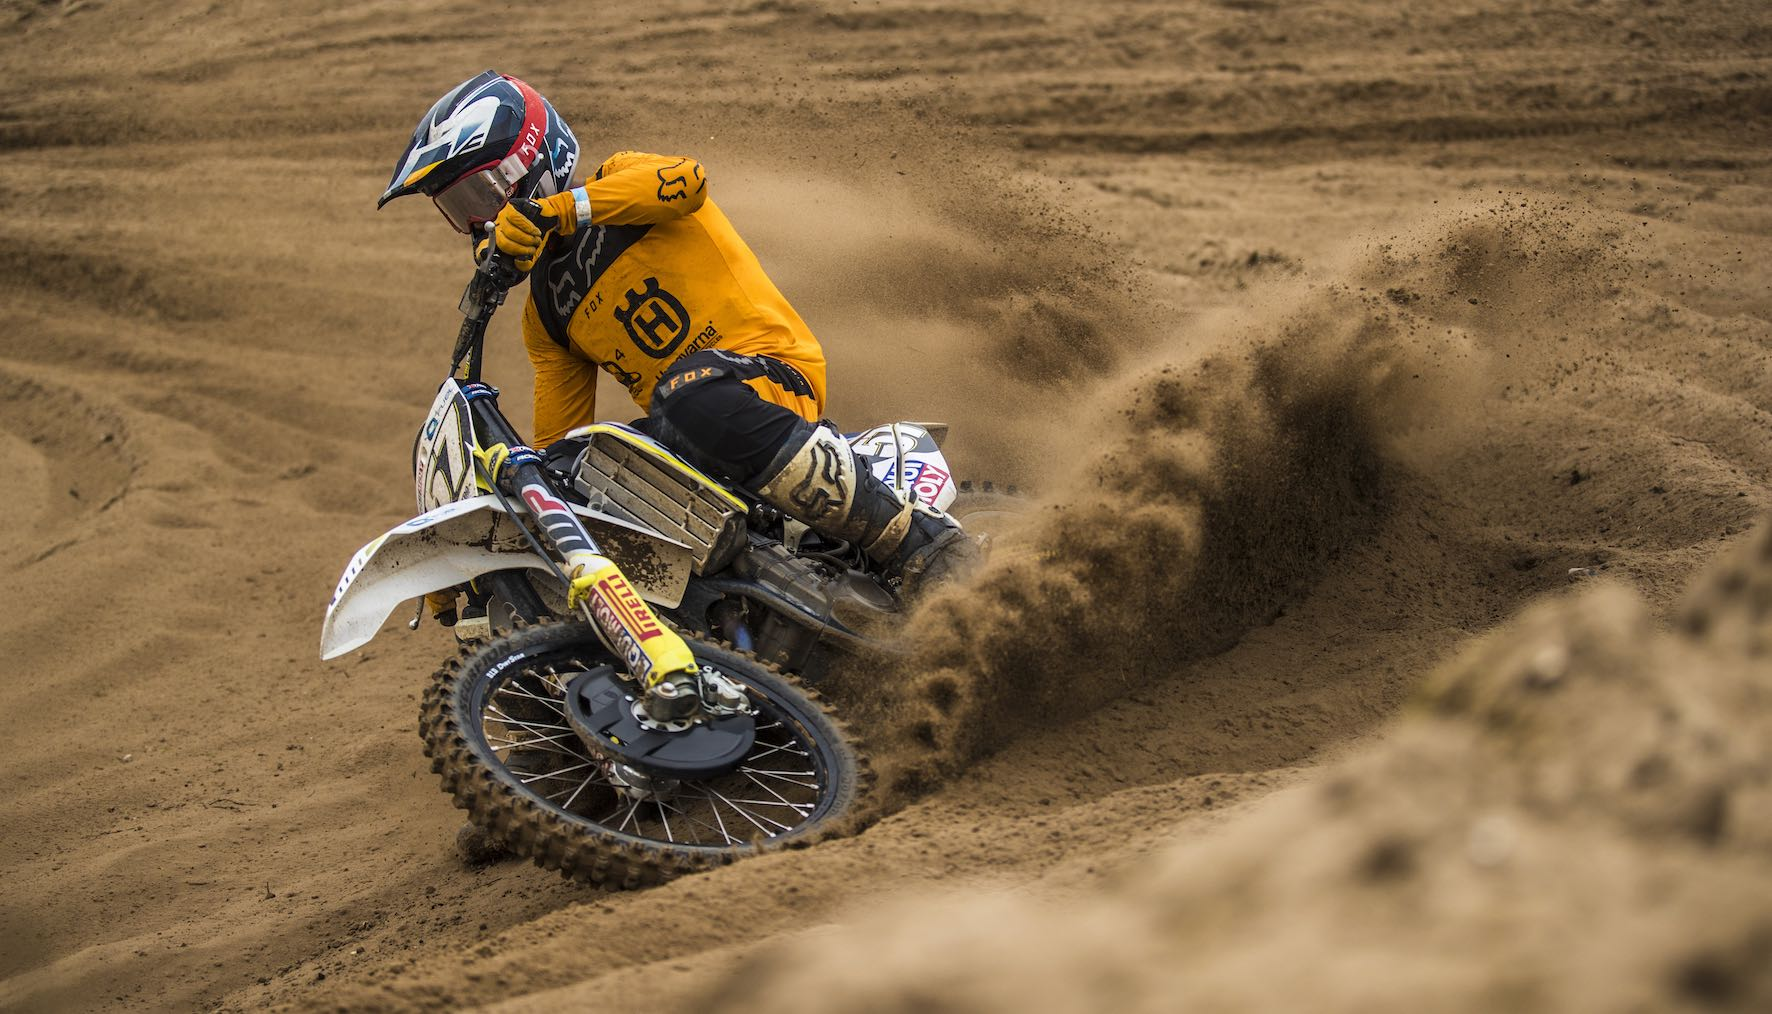 Maddy Malan racing to a motocross victory in the MX1 class